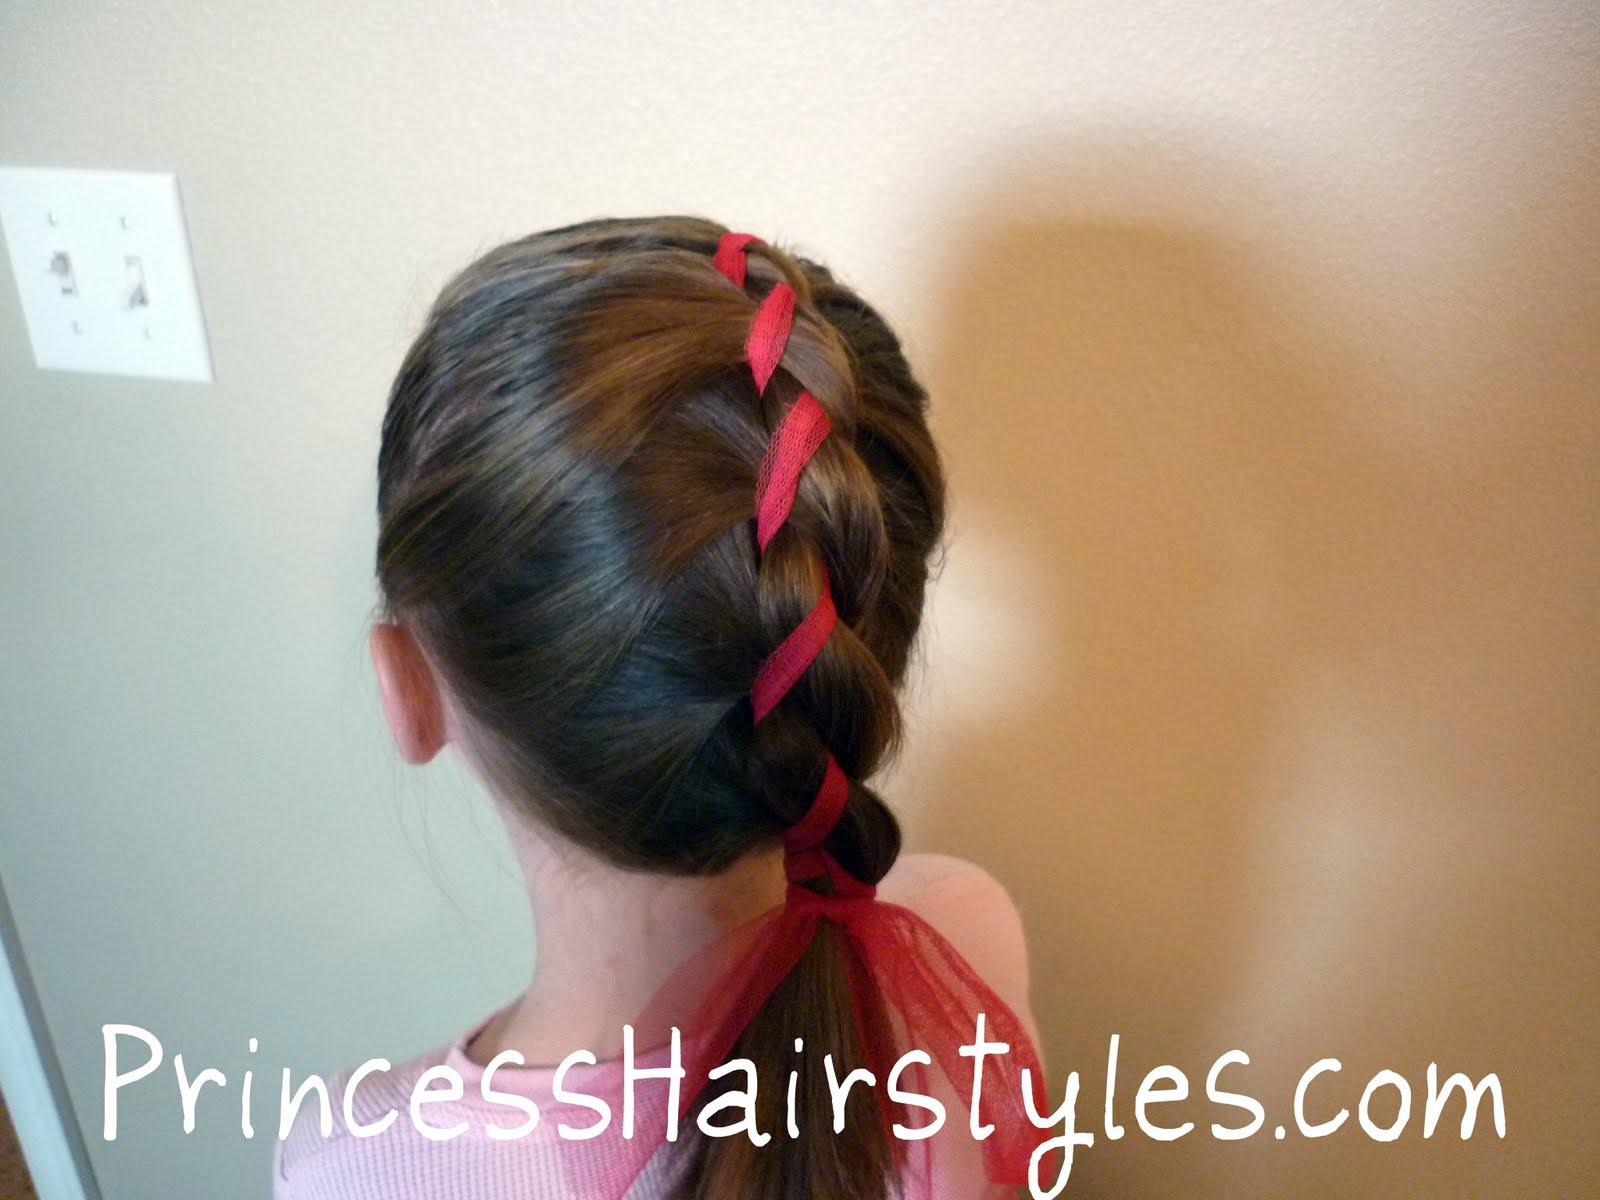 ultra short hairstyles : easiest french braid ever! So, those of you who have trouble braiding ...